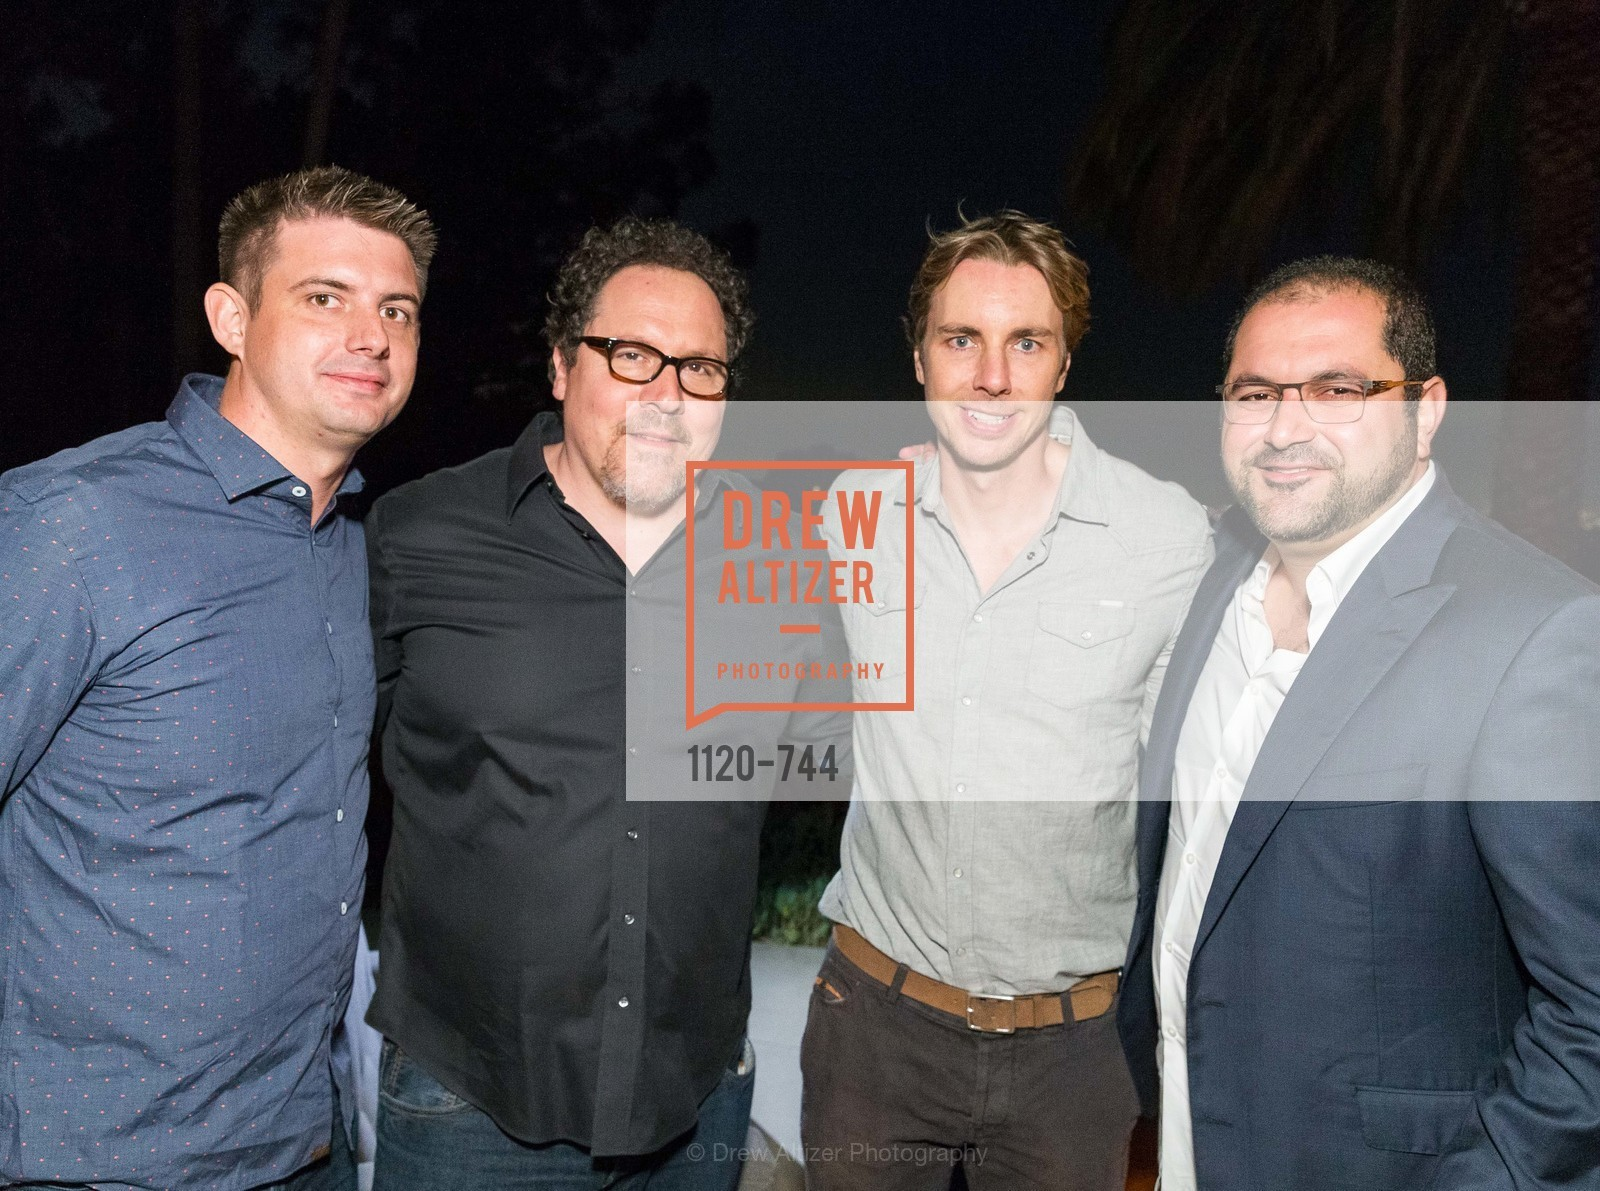 Kevin Gibbon, Jon Favreau, Dax Shepard, Shervin Pishevar, Celebration of Launch of SHYP in Los Angeles, US, May 21st, 2015,Drew Altizer, Drew Altizer Photography, full-service event agency, private events, San Francisco photographer, photographer California